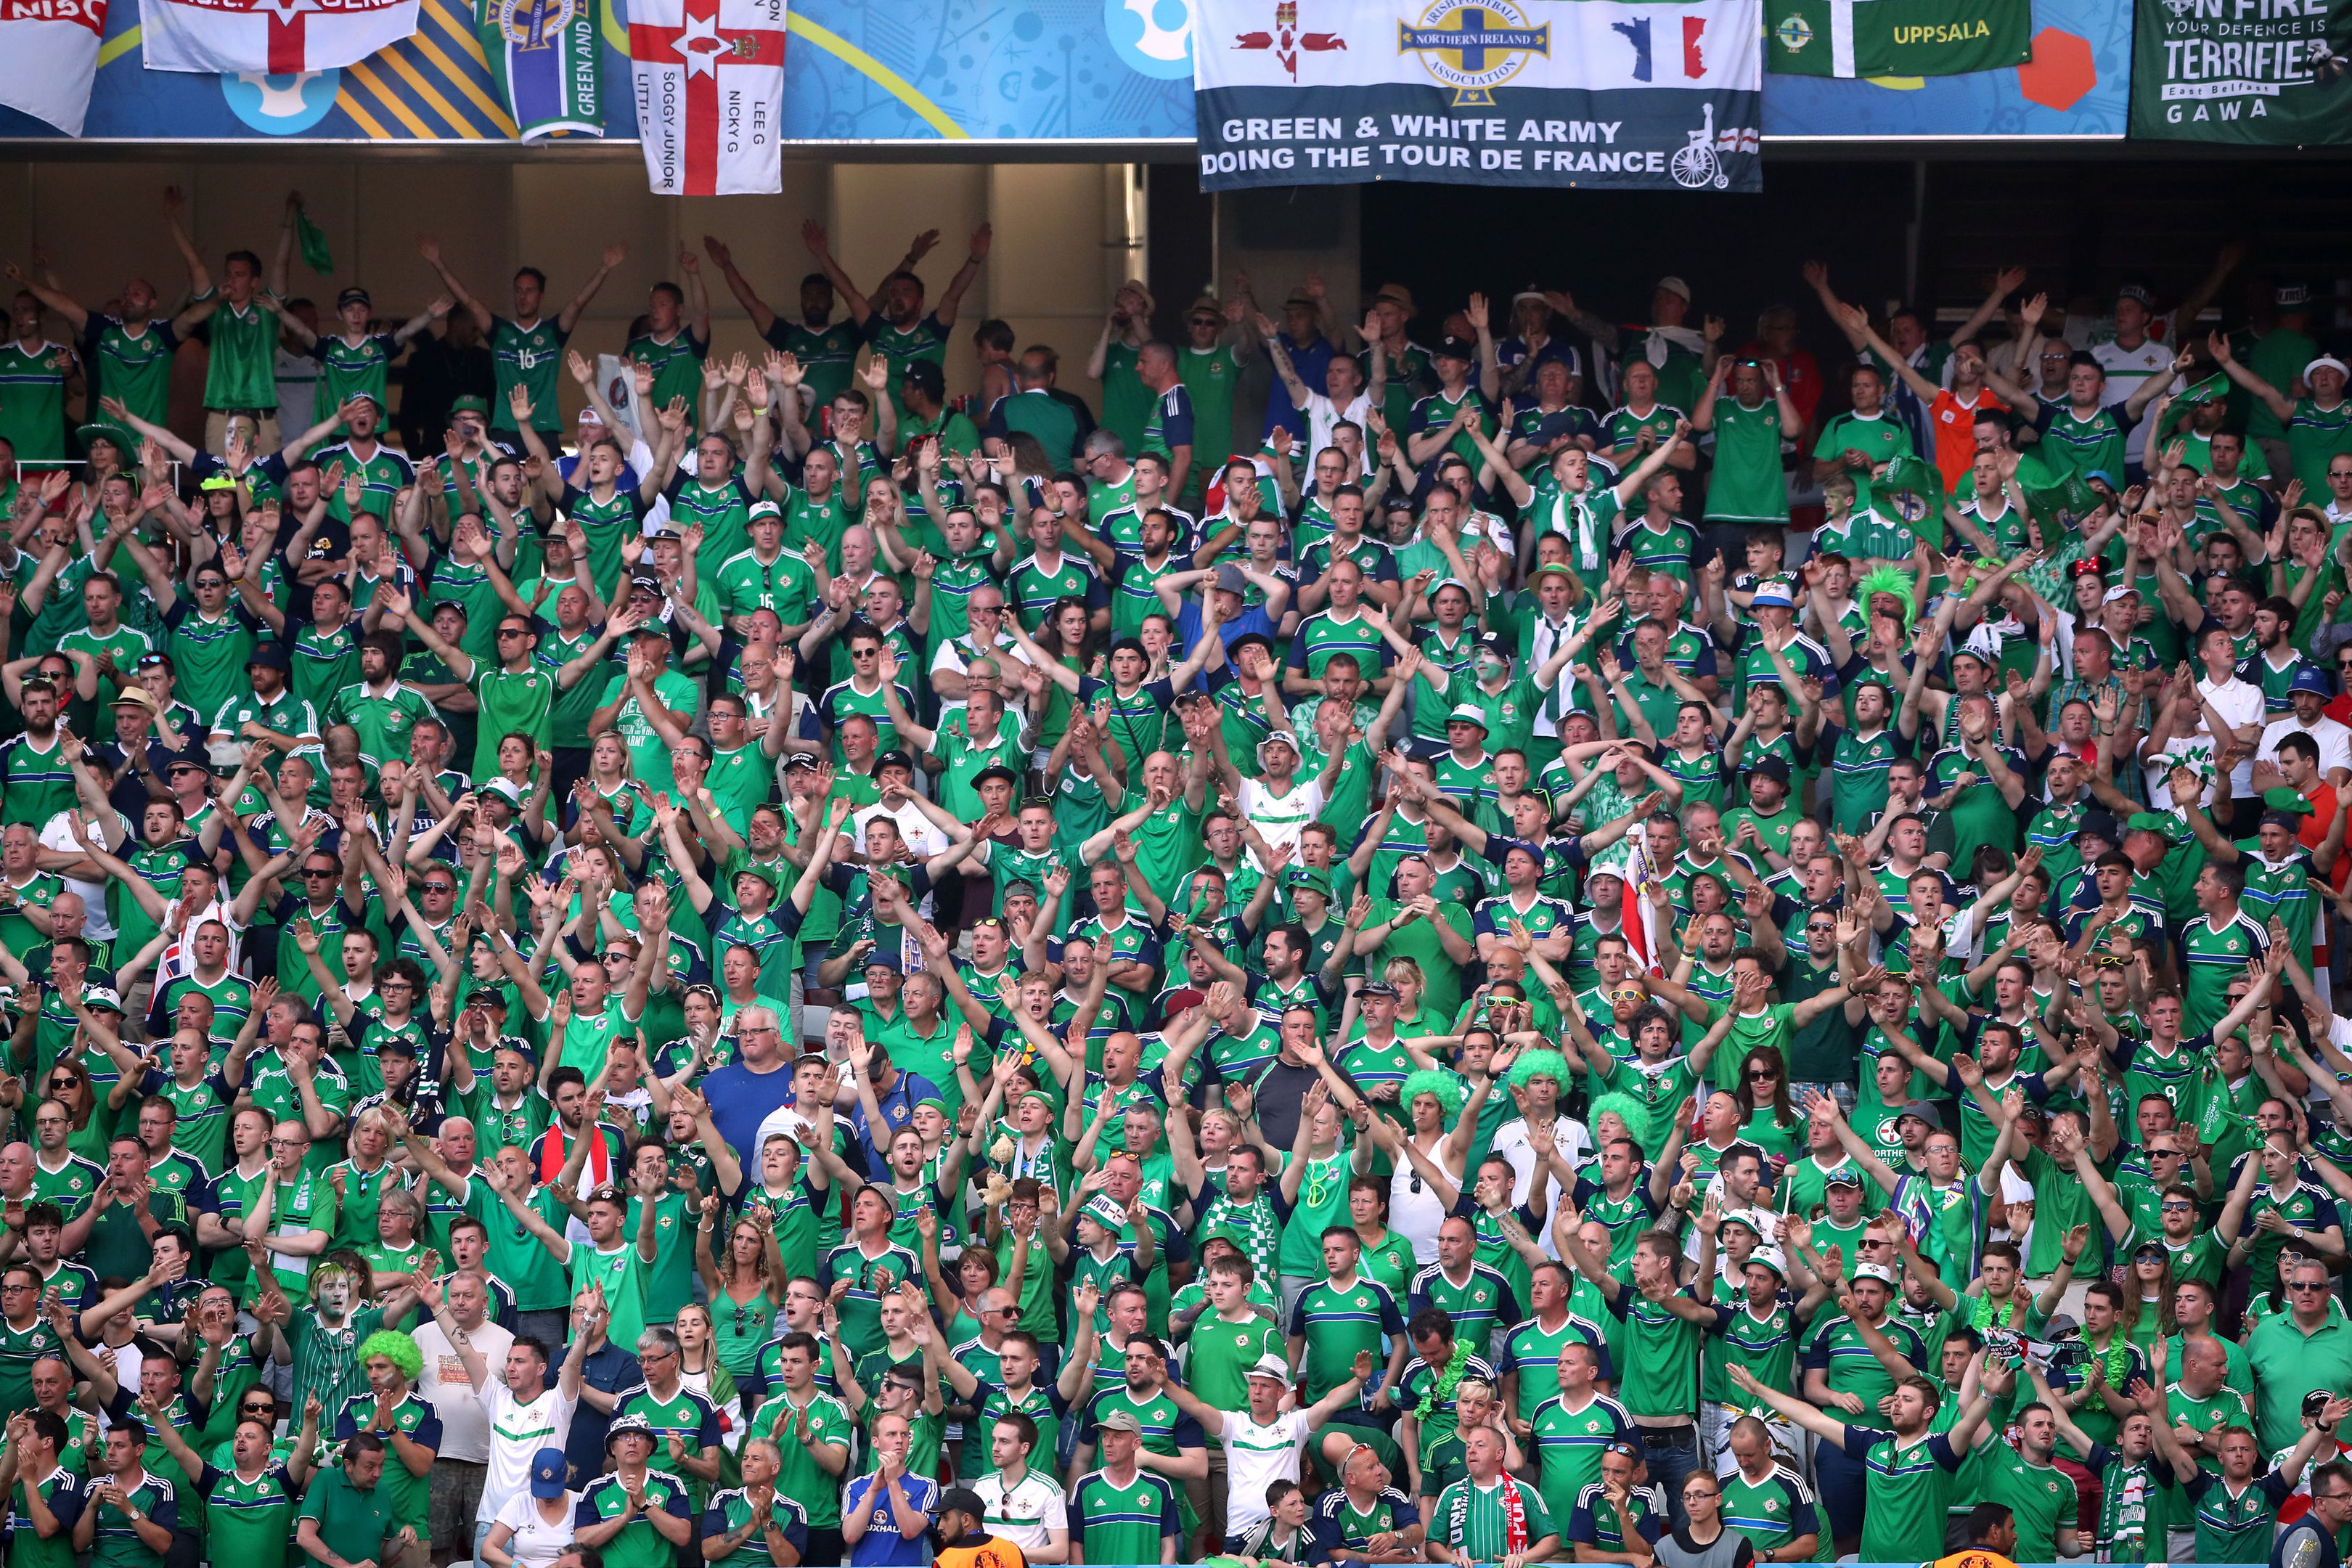 Northern Ireland at yesterday's game against Poland.